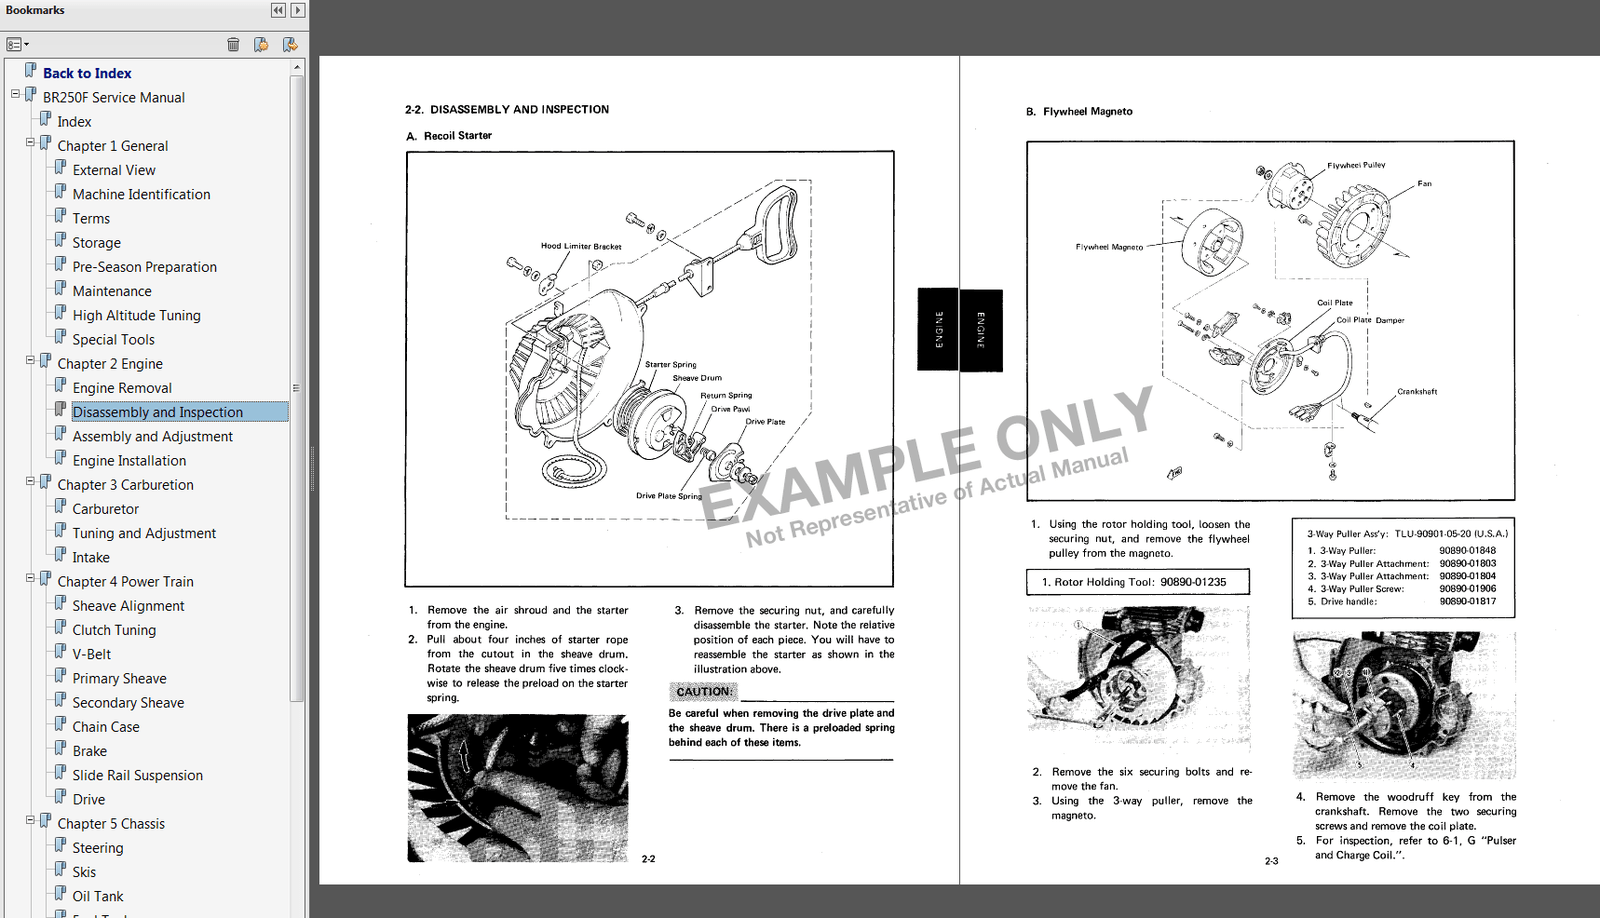 1986-1990 Yamaha Inviter CF 300 Snowmobile Service Manual